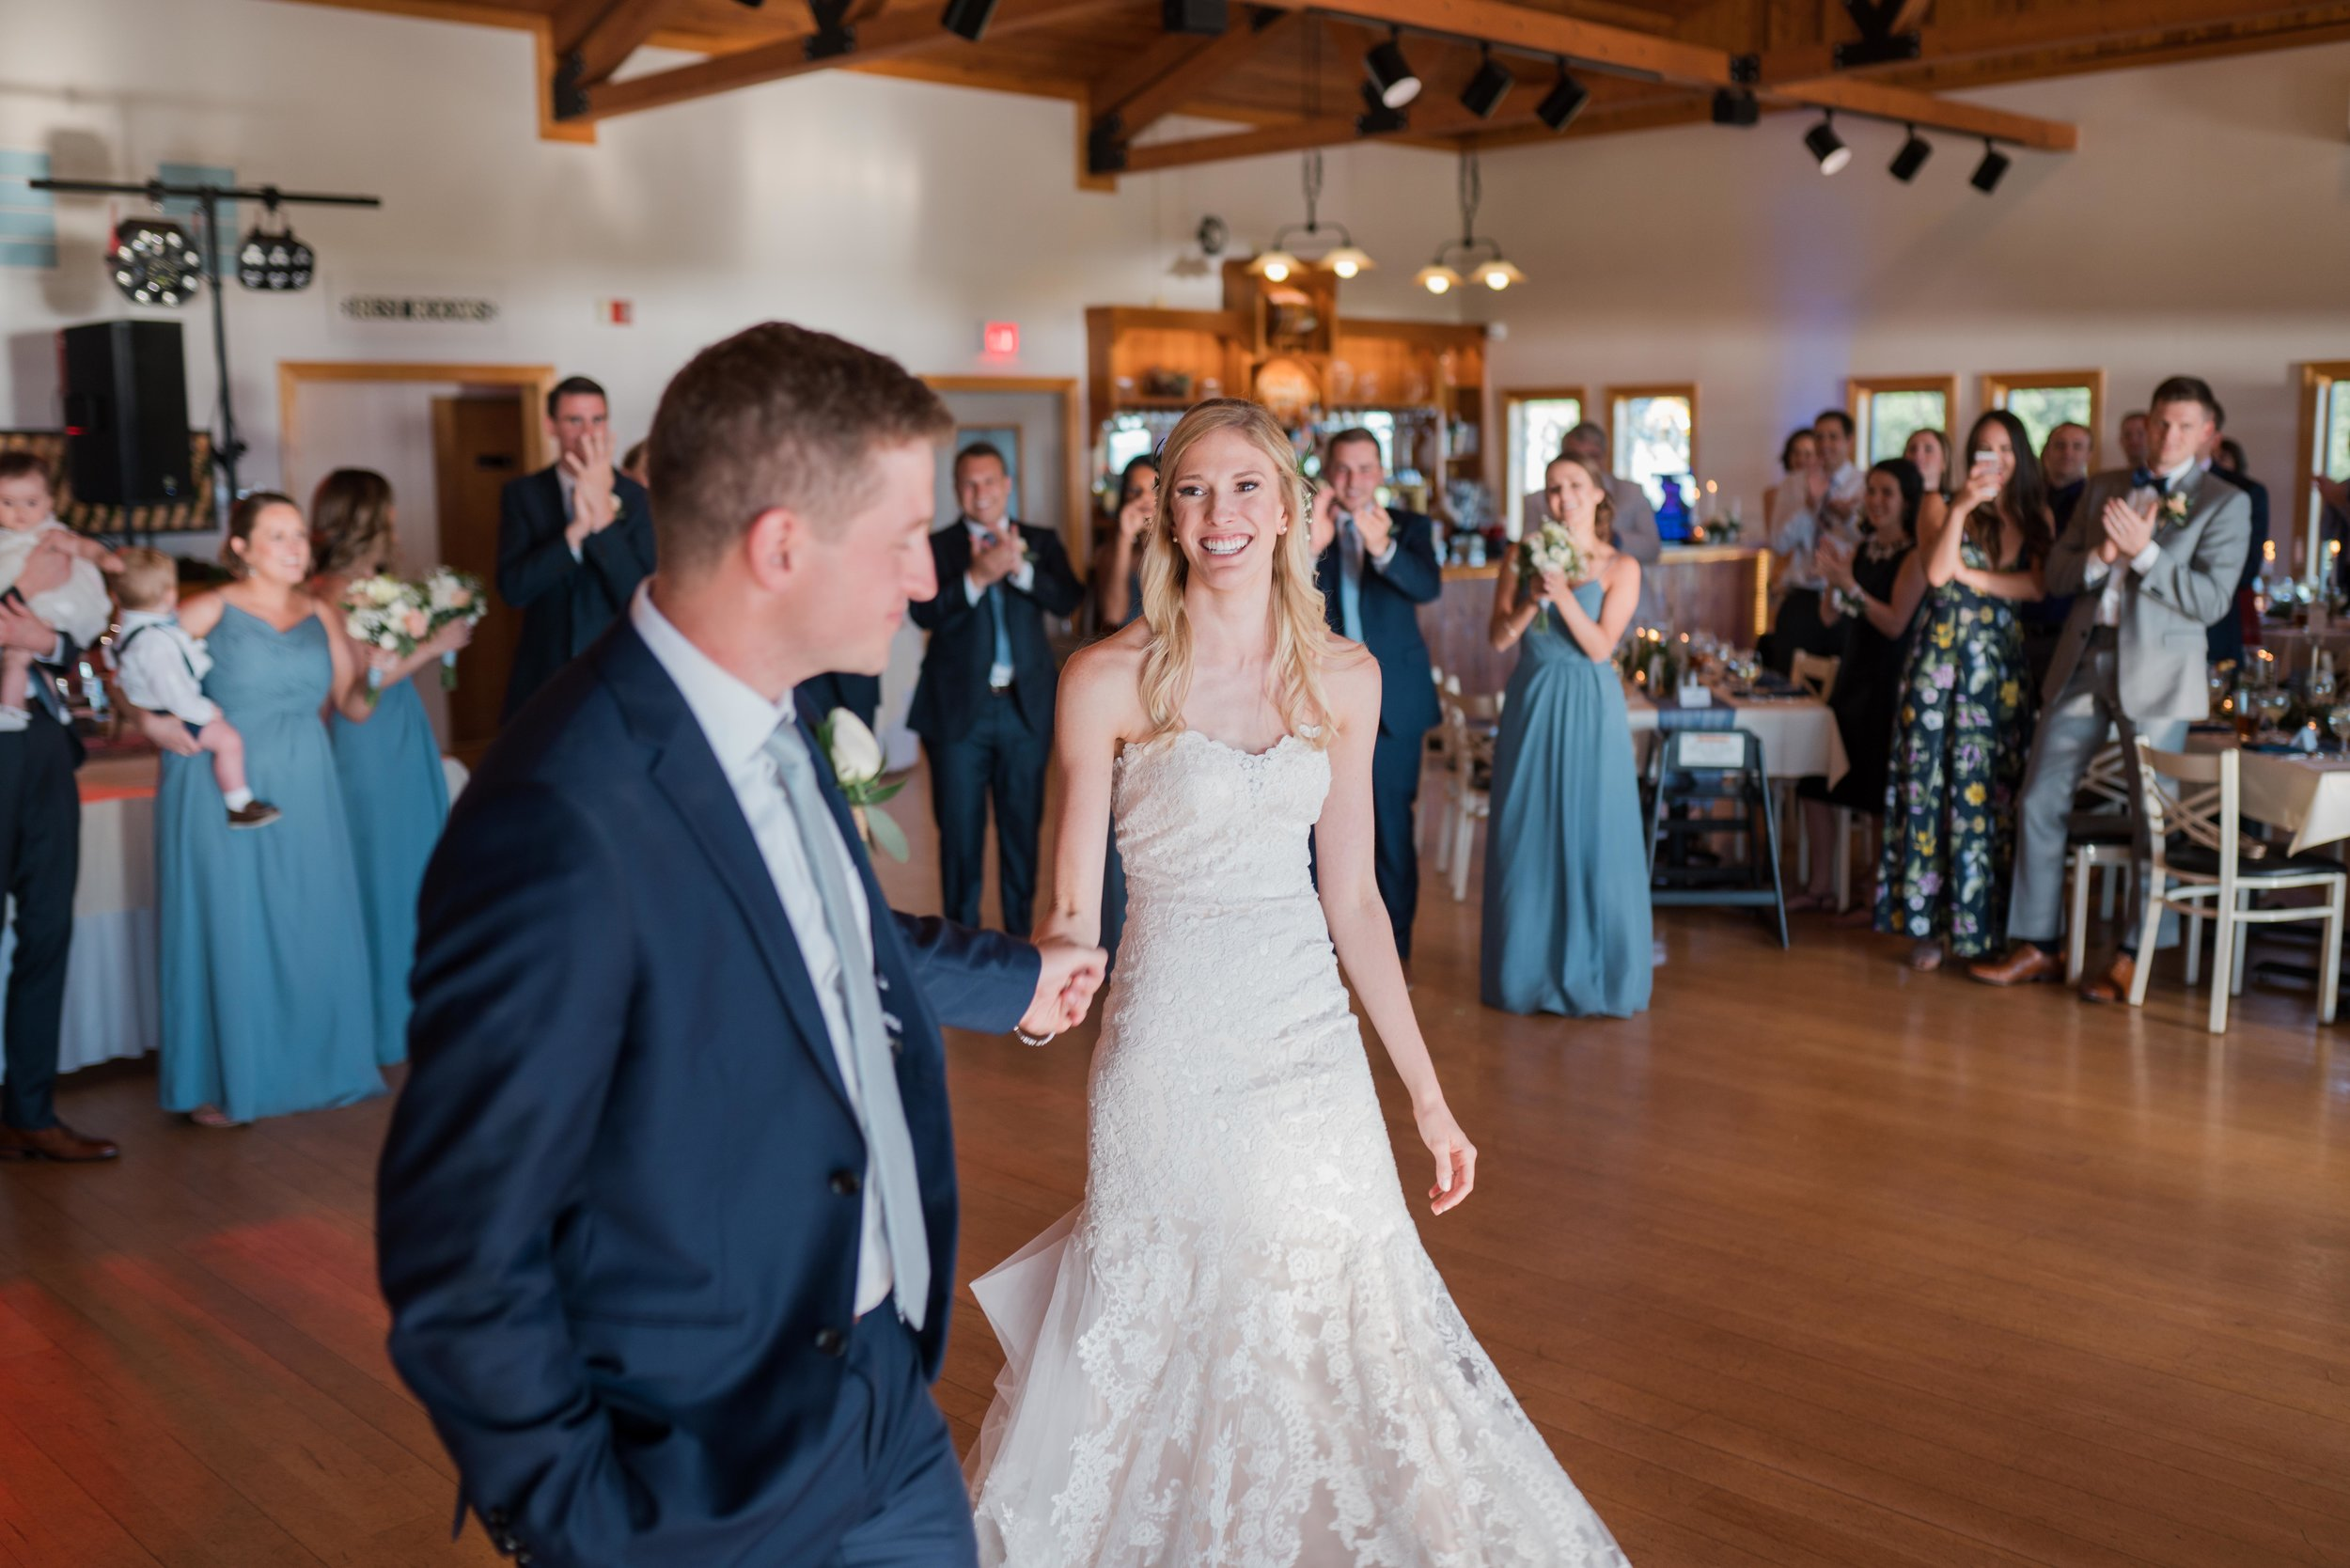 Wedding Photography at Wagner Vineyards Ginny Lee Cafe Finger Lakes by Stefan Ludwig Photography-74.jpg